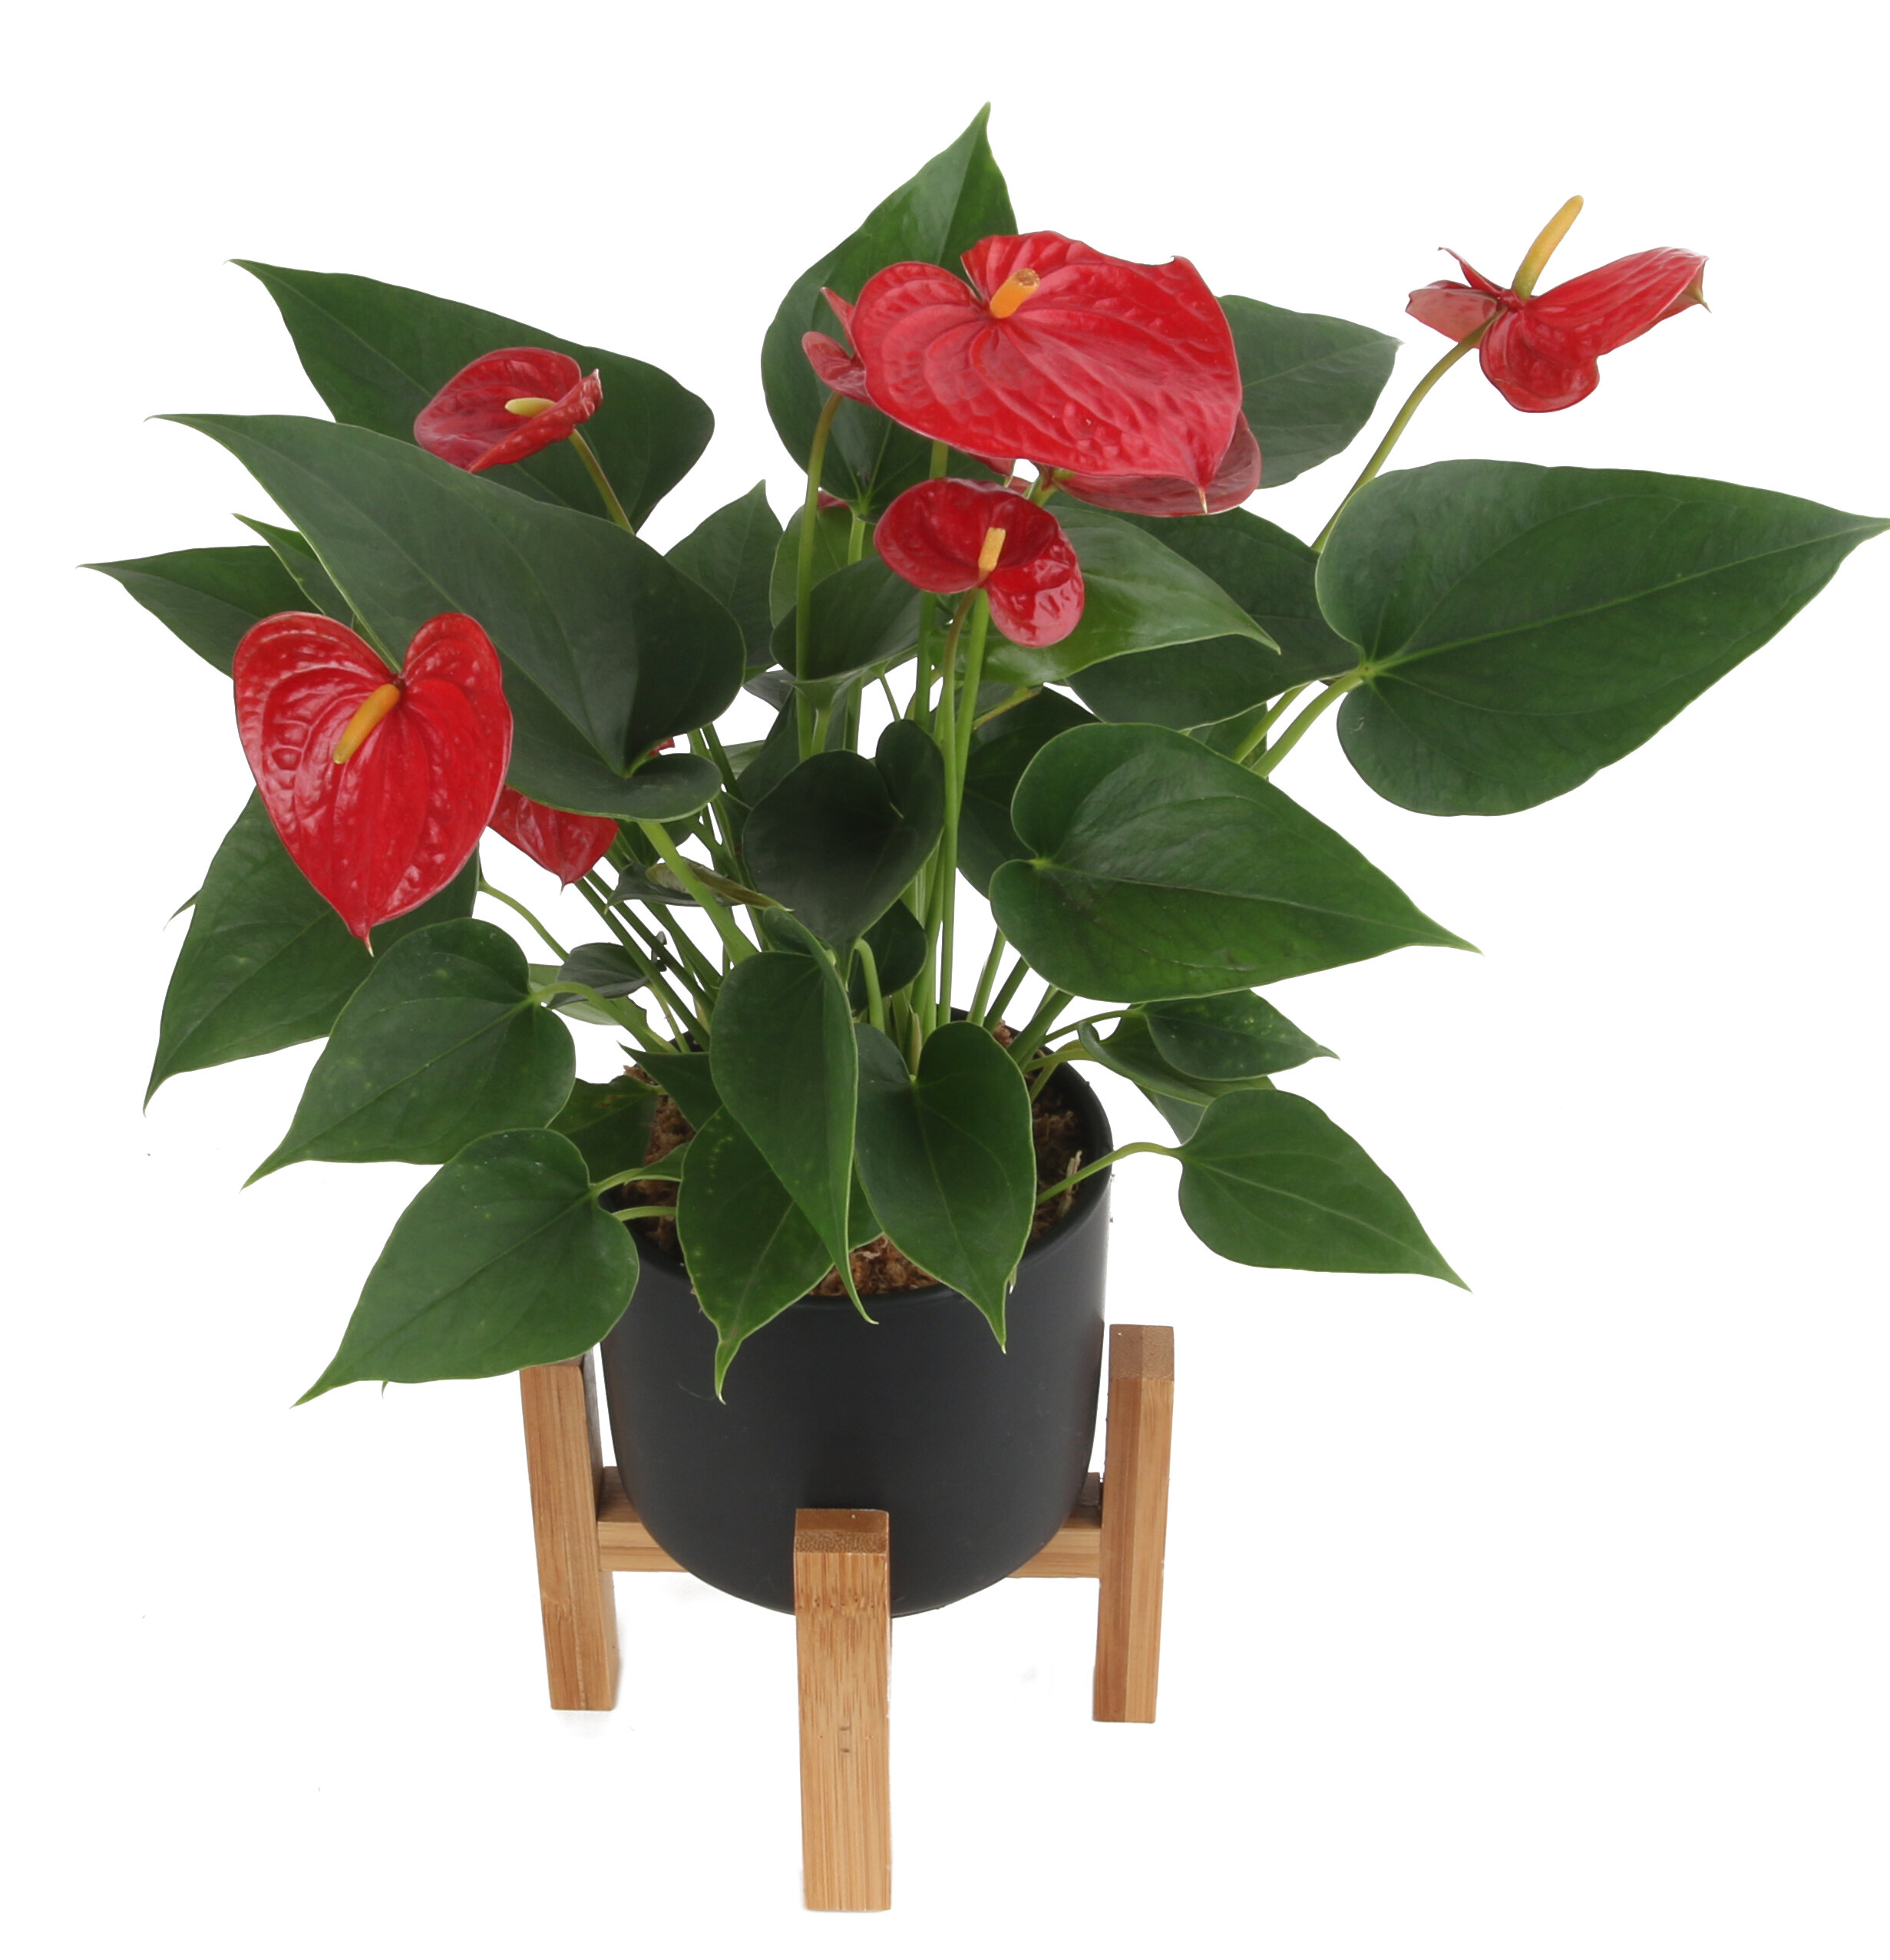 Costa Farms 10 Live Flowering Plant In Planter Wayfair